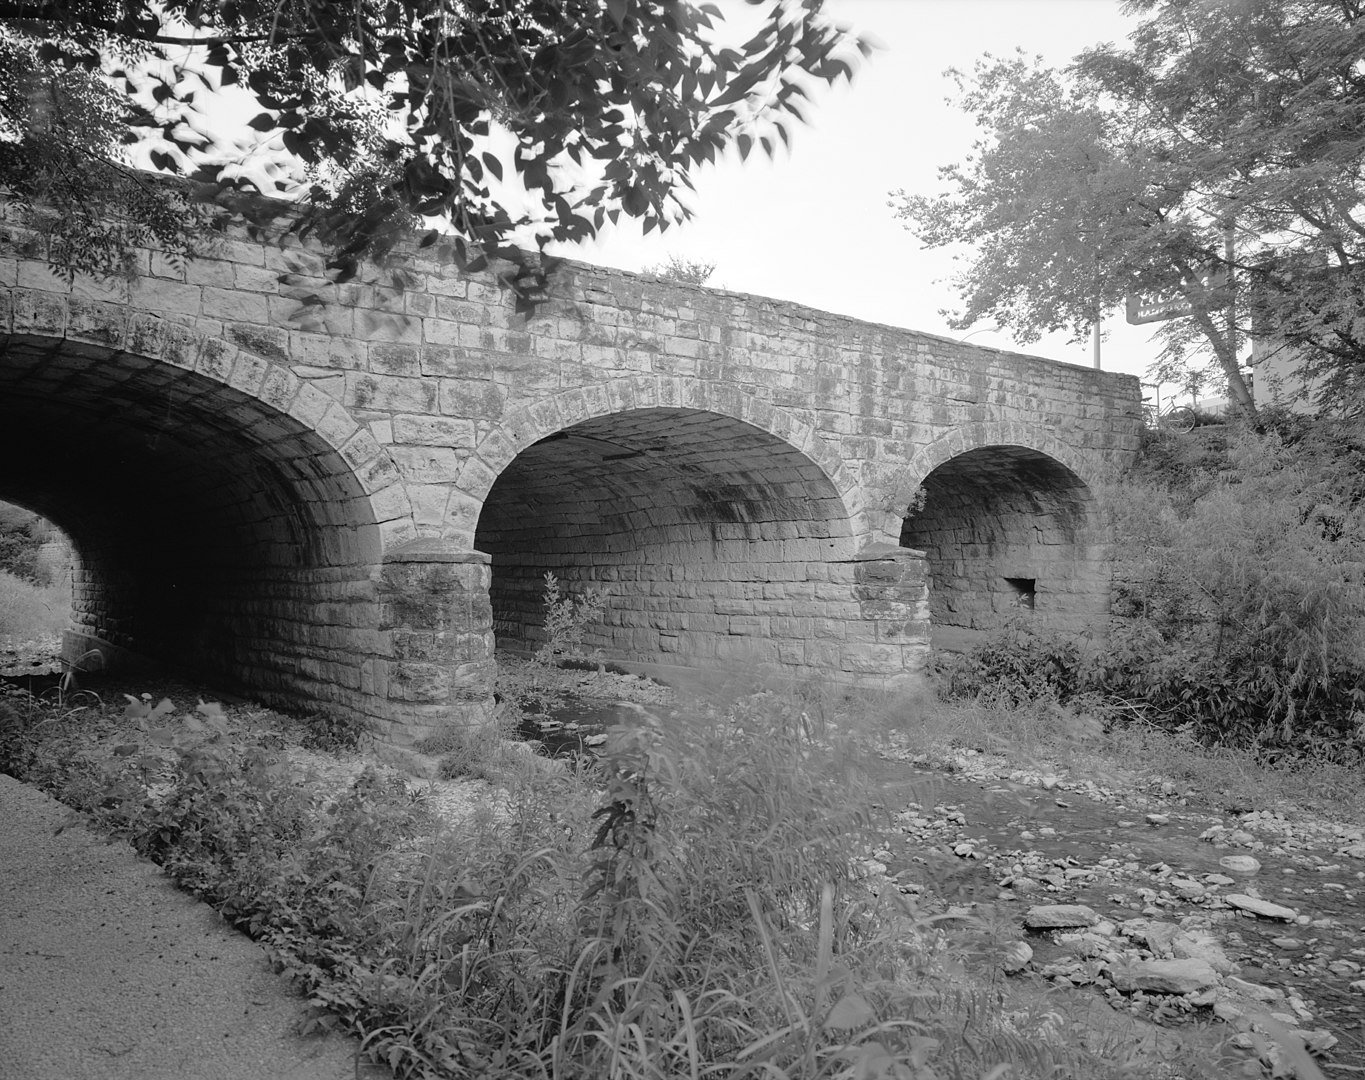 1968 photo of the historic West Sixth Street Bridge at Shoal Creek in Austin, Texas.